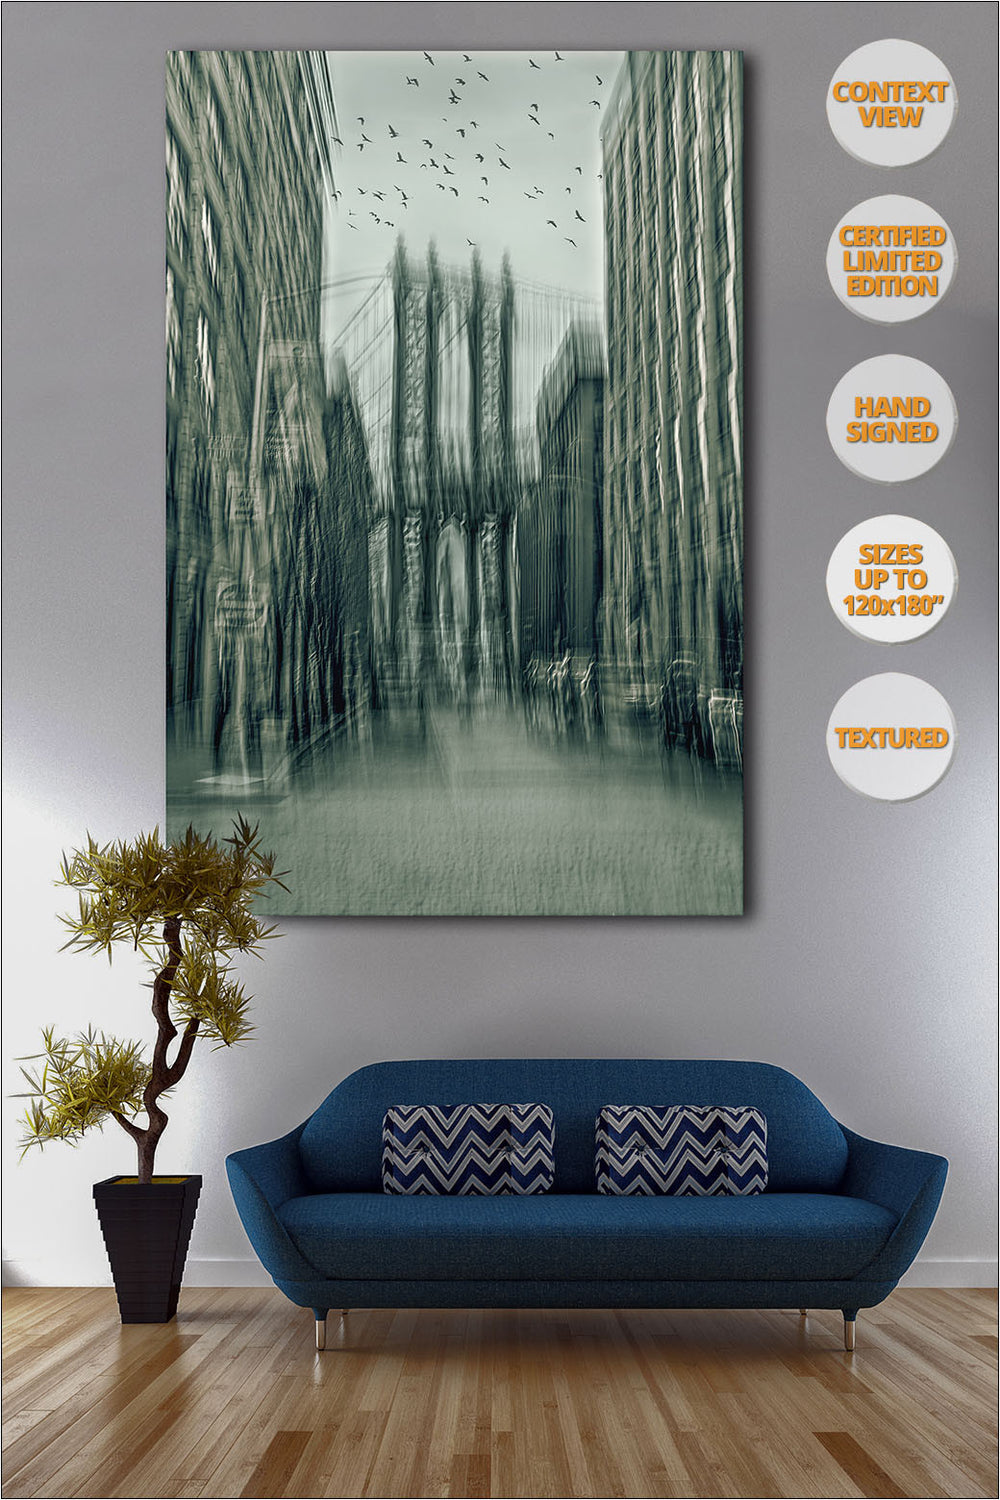 Manhattan Bridge, 'Way to Freedom' Series. | Print hanged over sofa.